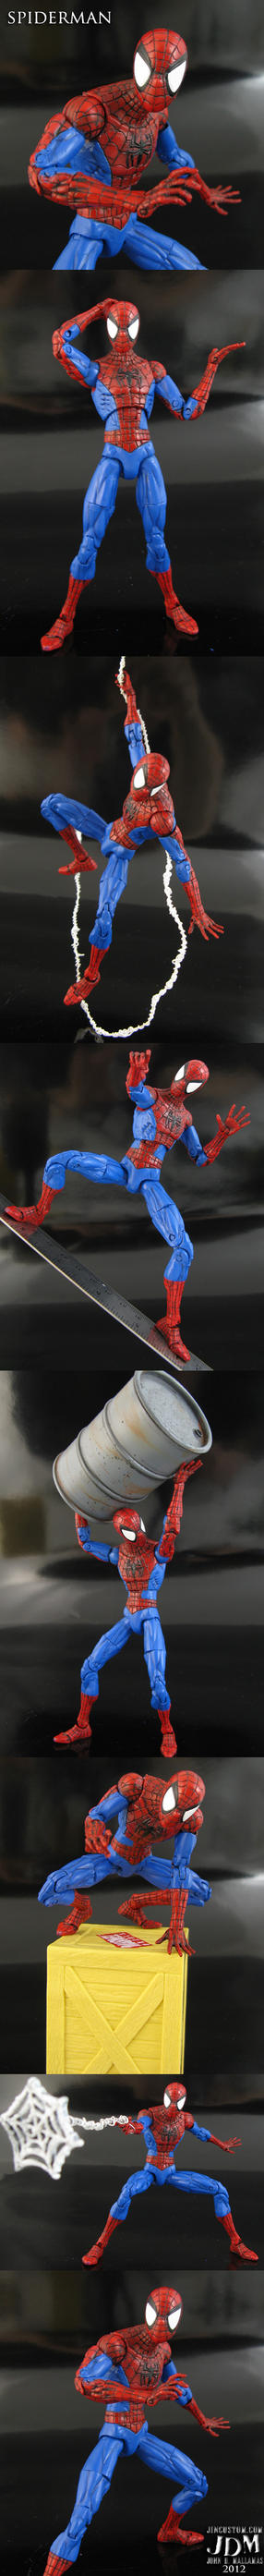 The Spectacular Spiderman Marvel Legends by Jin-Saotome